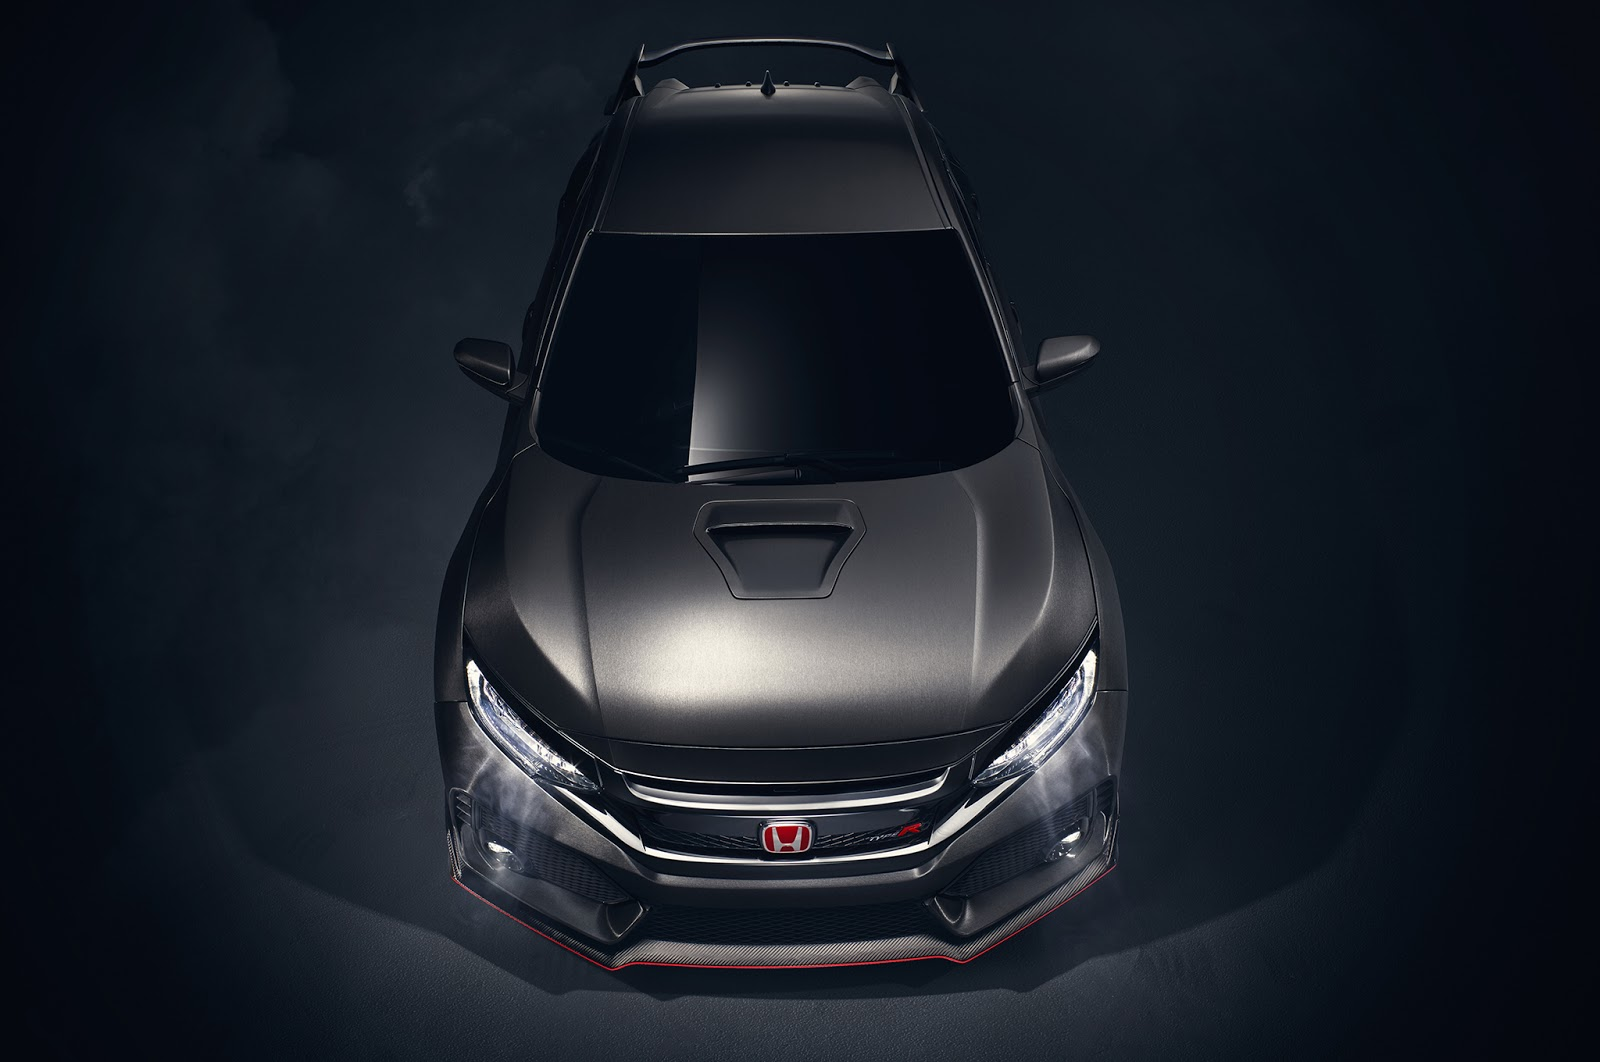 2018-Honda-Civic-Type-R-2.jpg